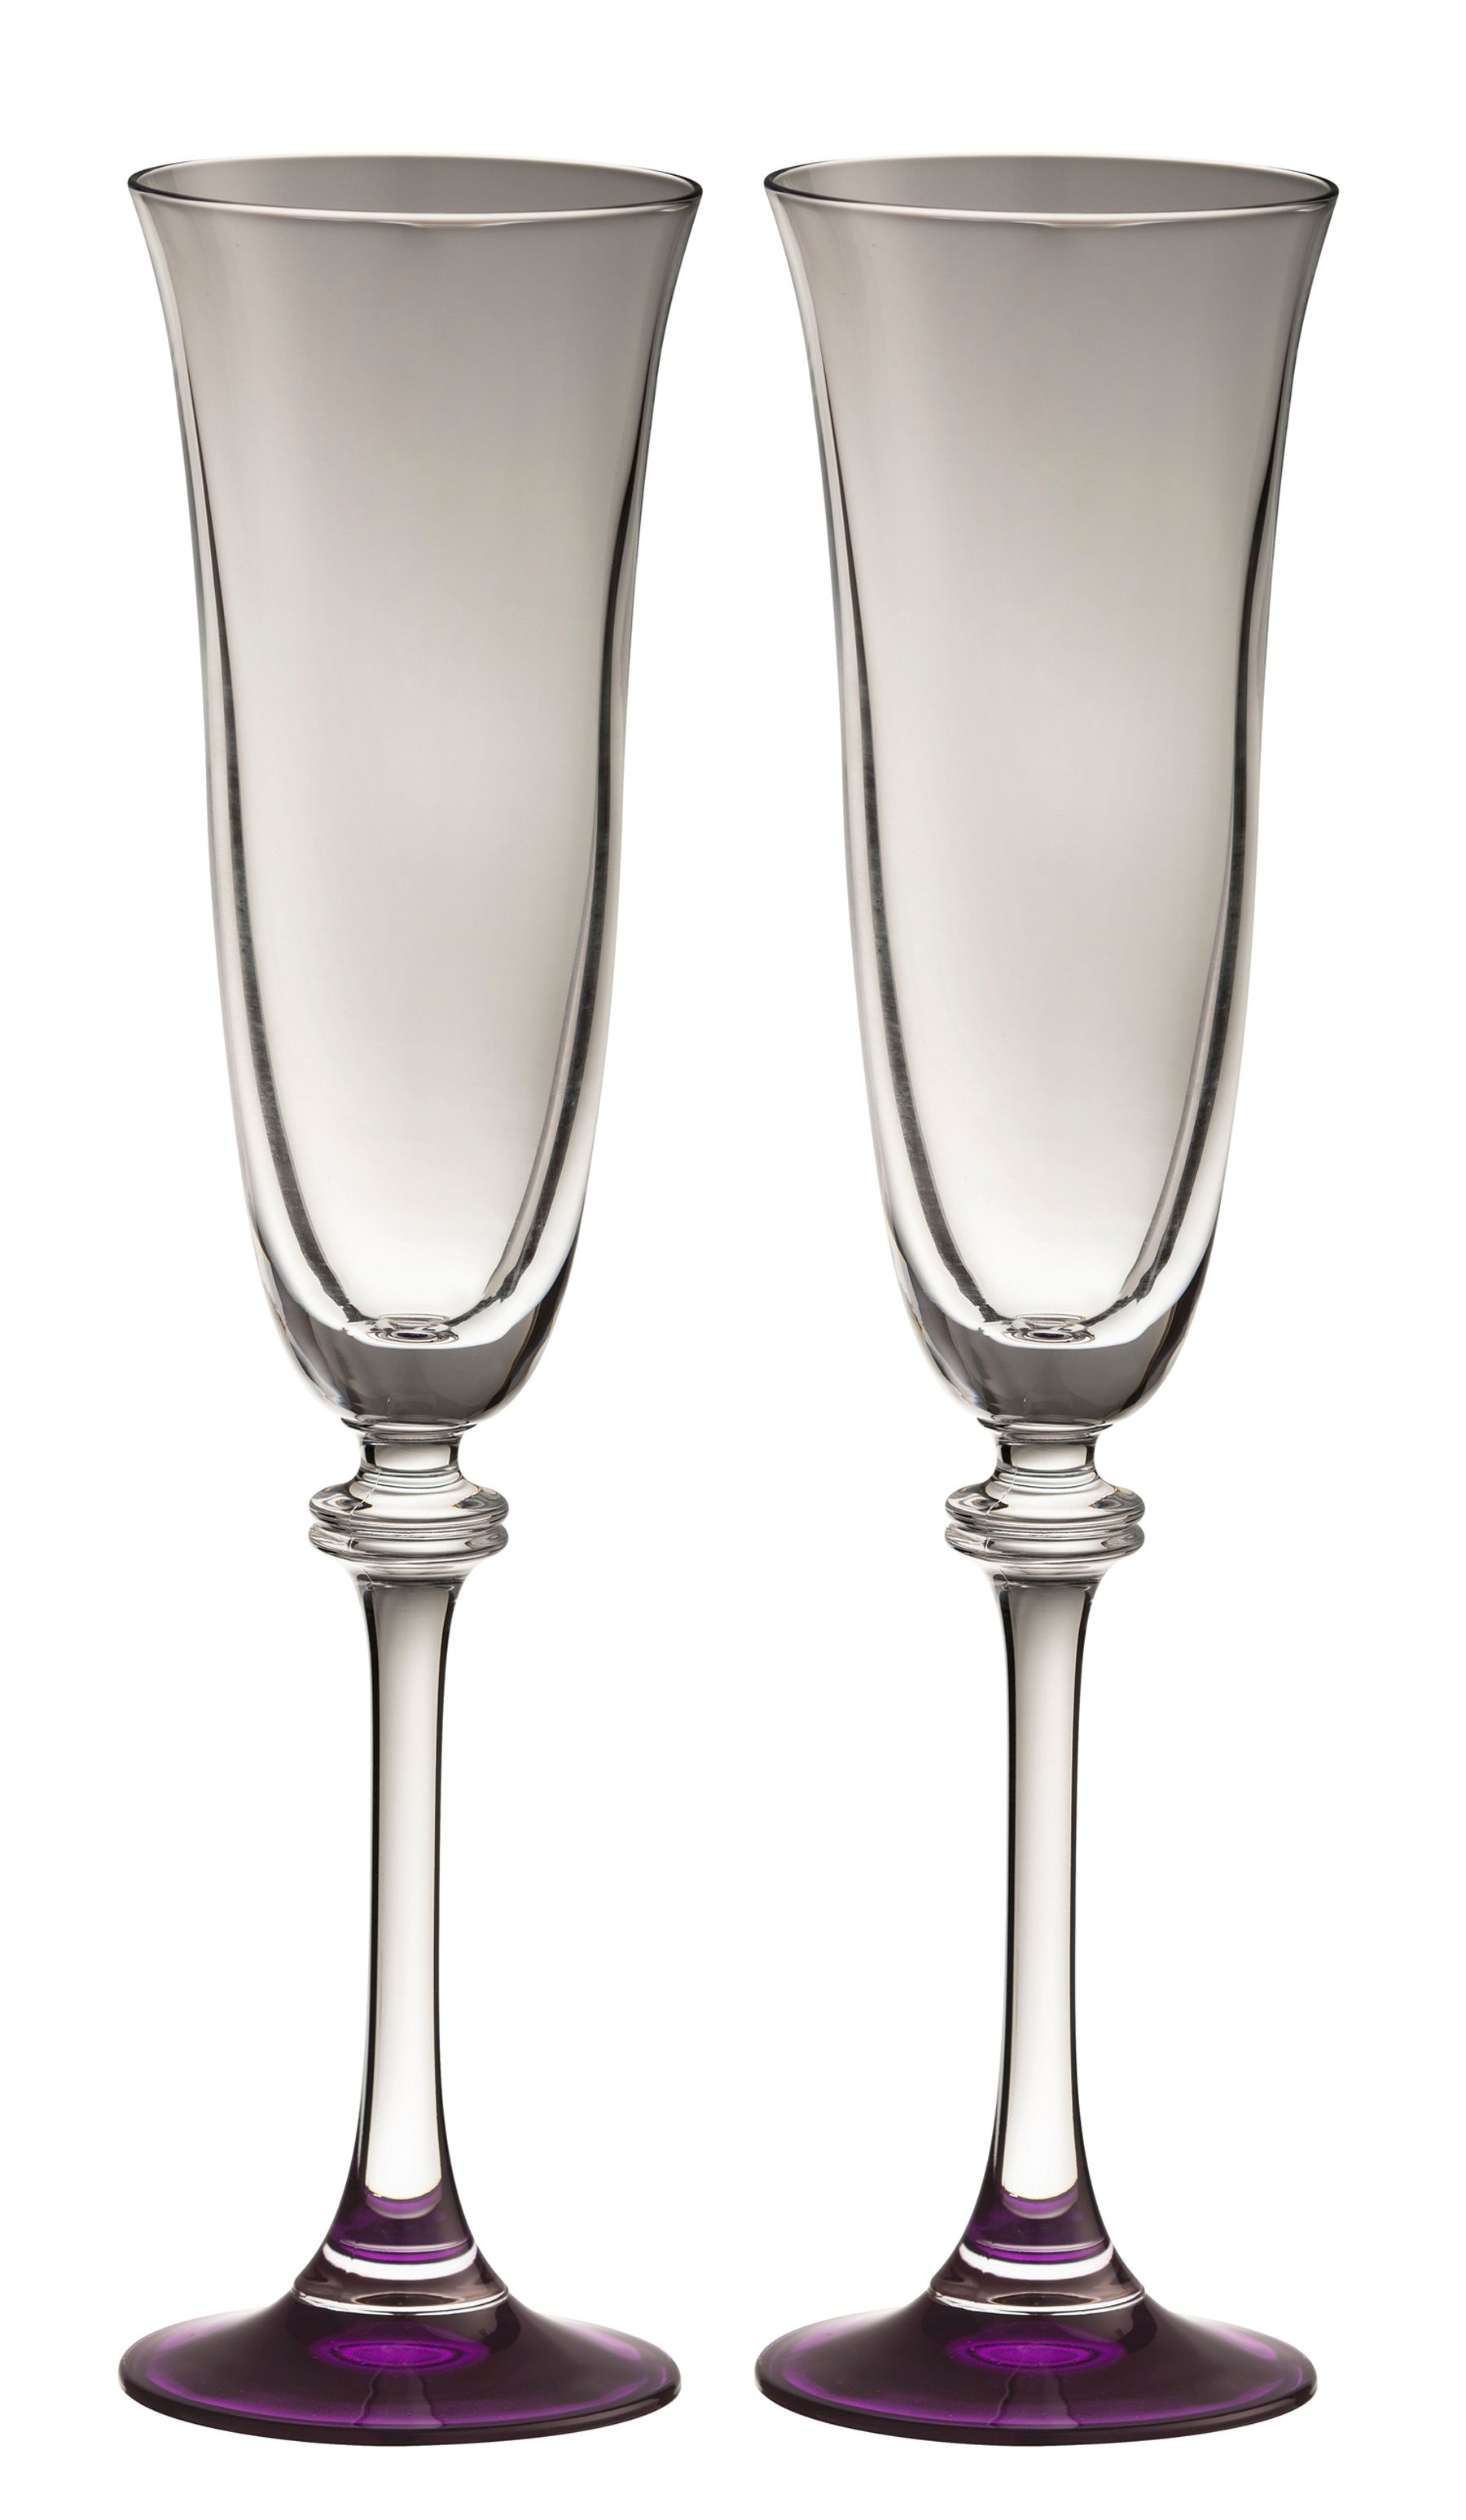 Image of Galway Liberty amethyst flutes (set of 2)